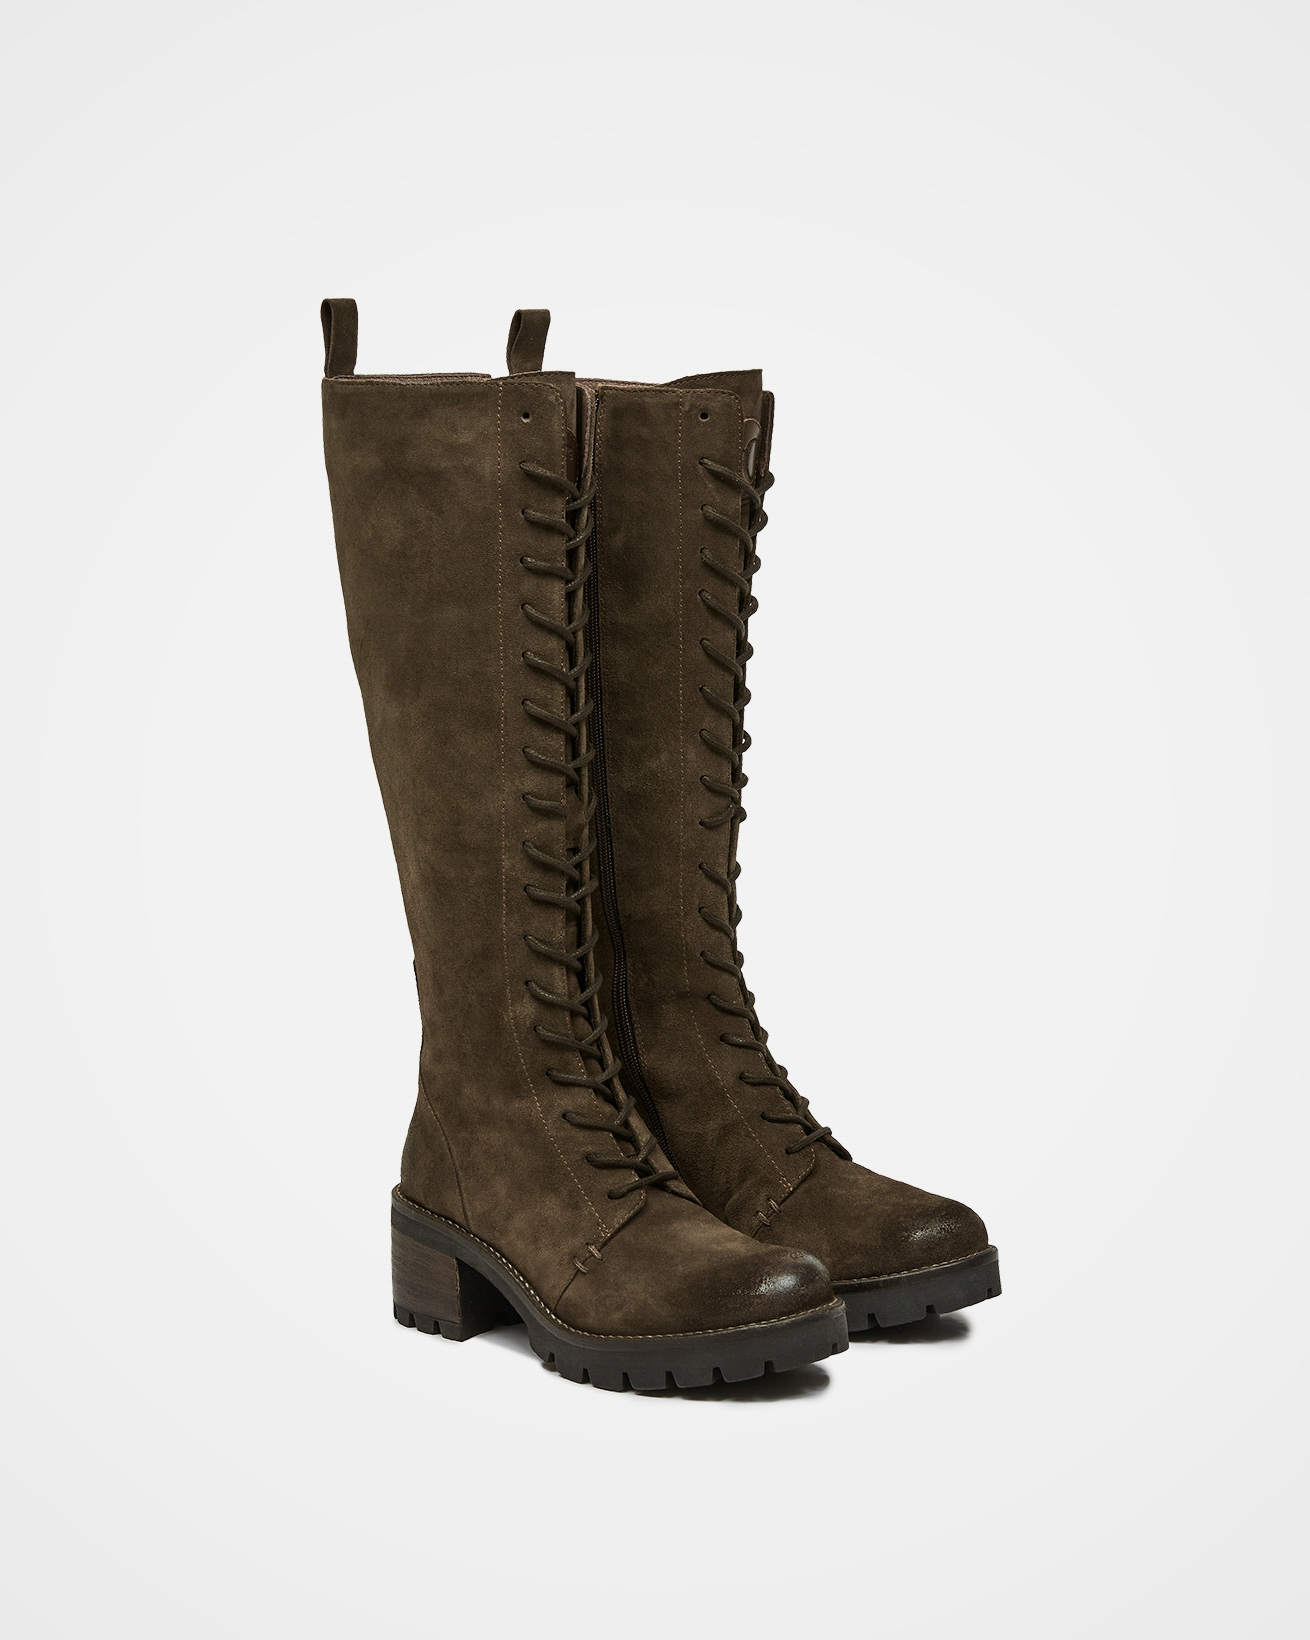 7843_lace-up-knee-boot_tanners-brown_1_cutout_web.jpg